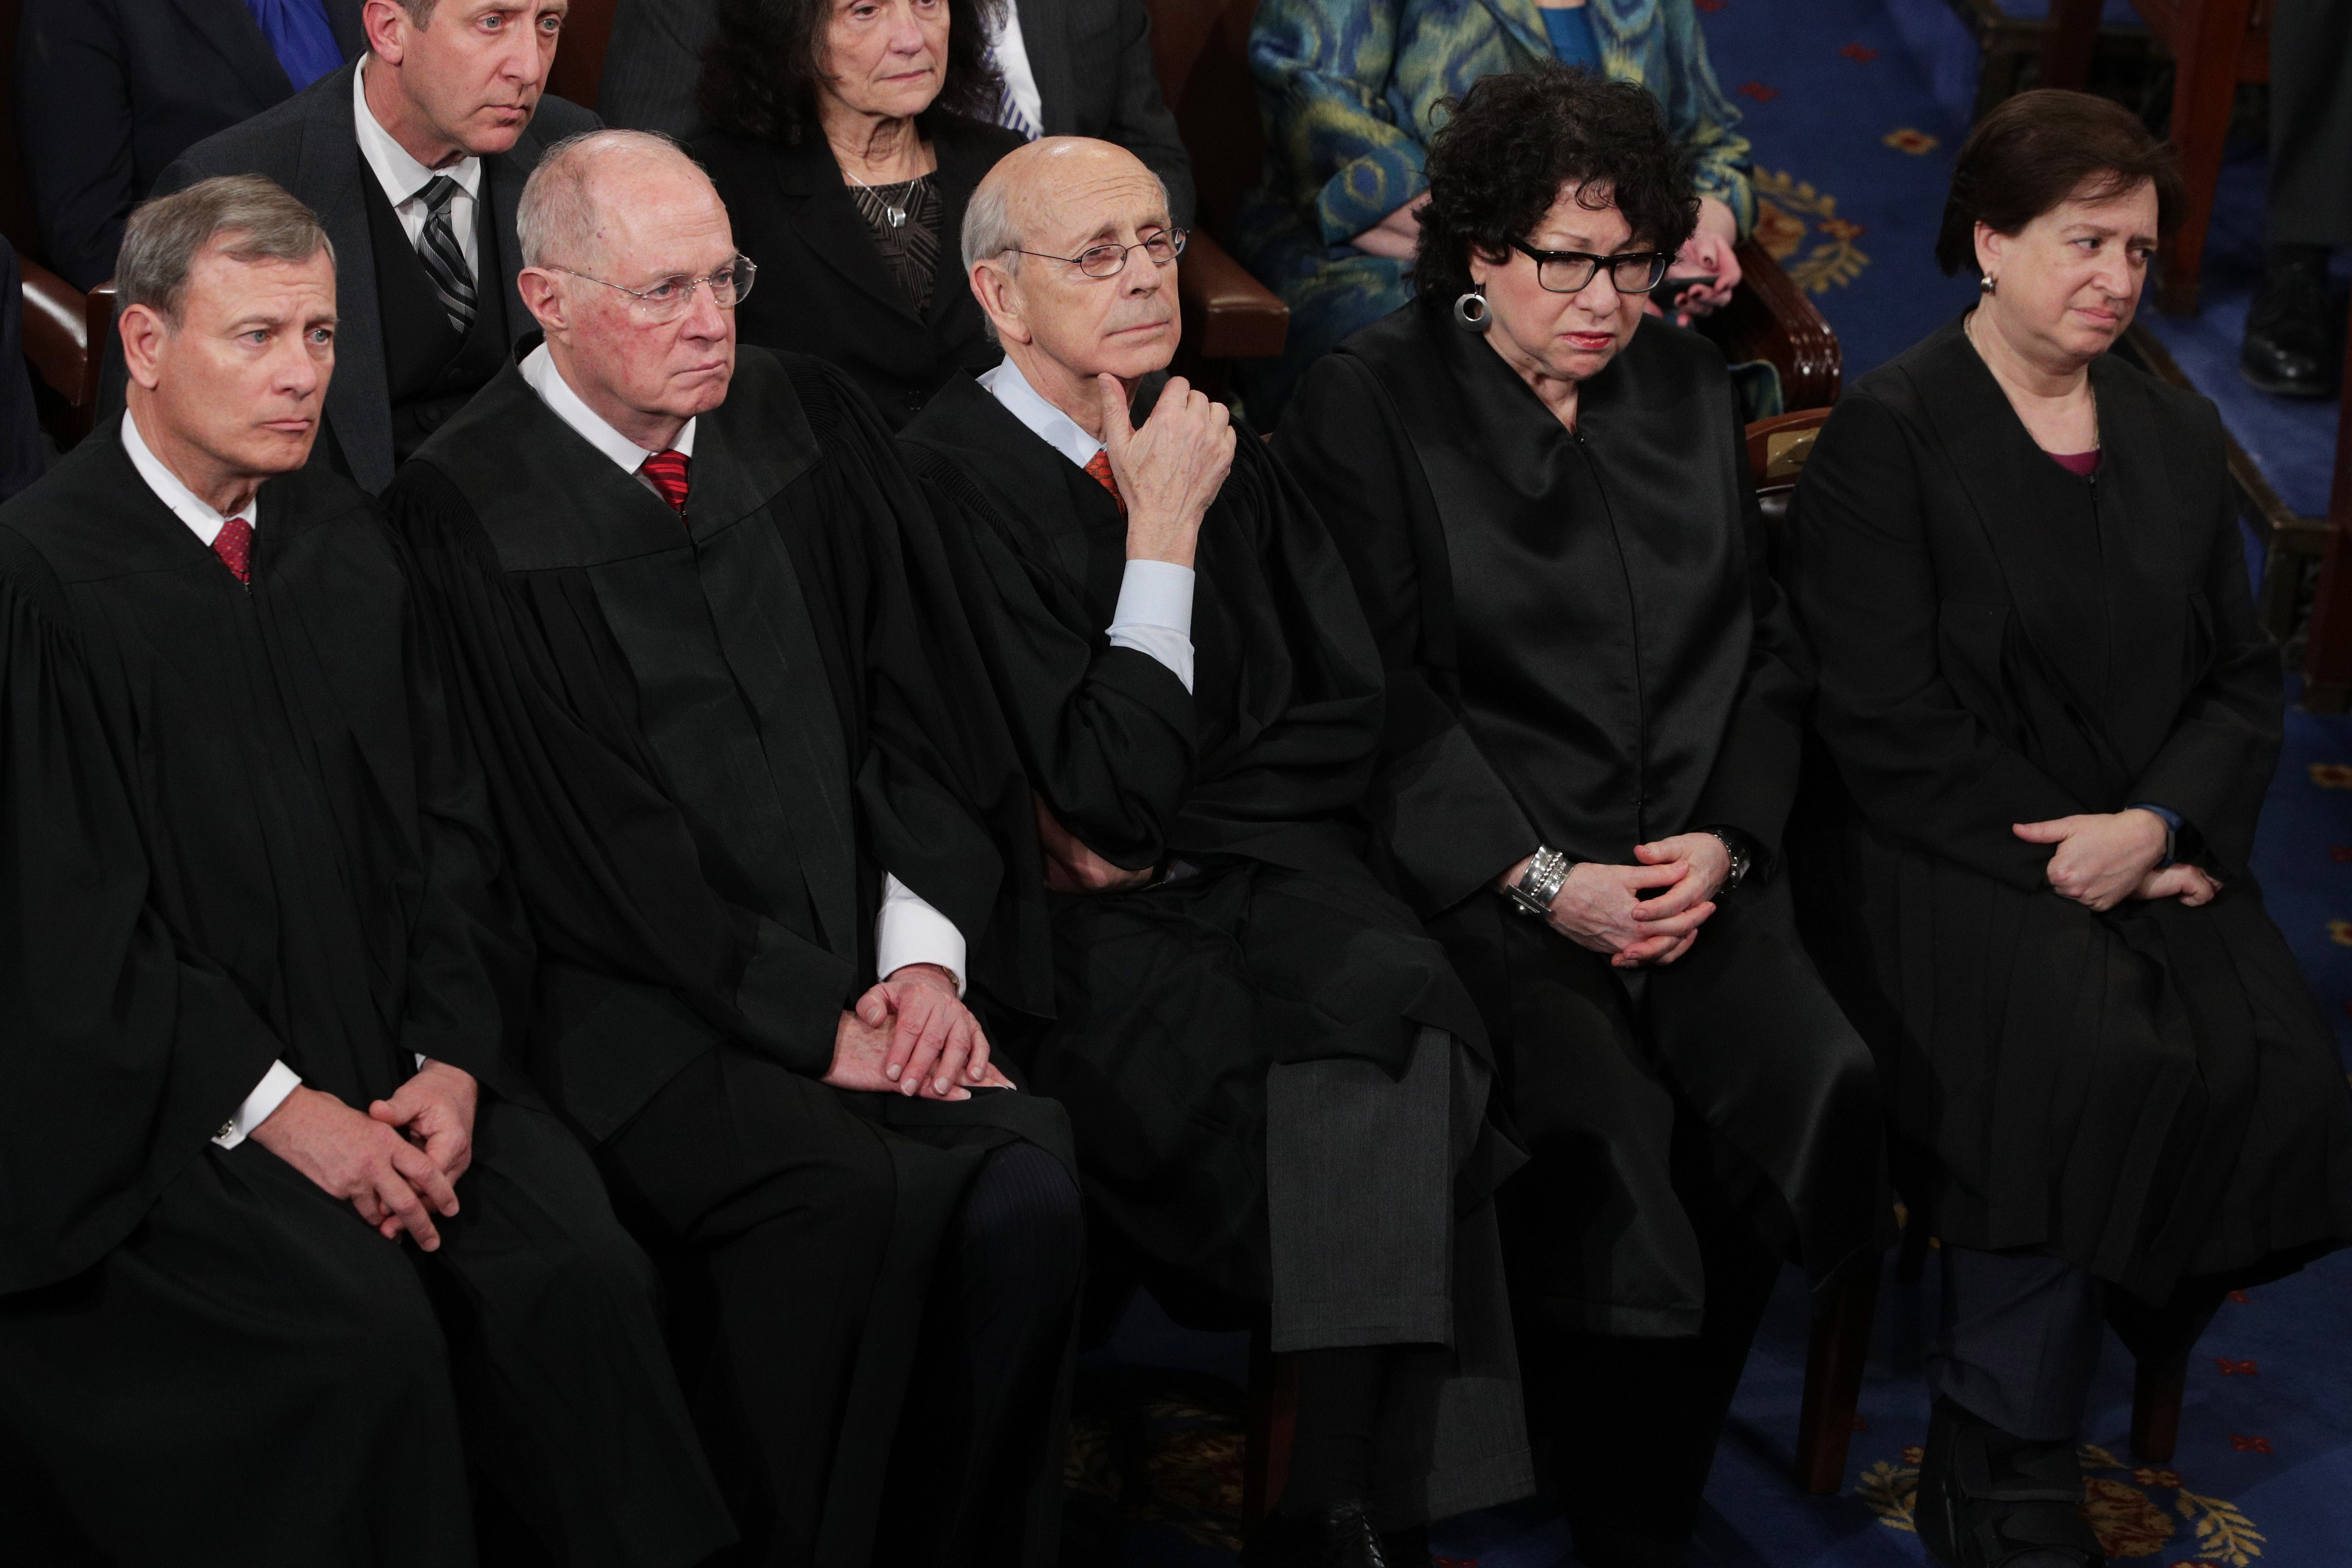 Immigration news: Supreme Court ruling raises fears about indefinite detention of immigrants